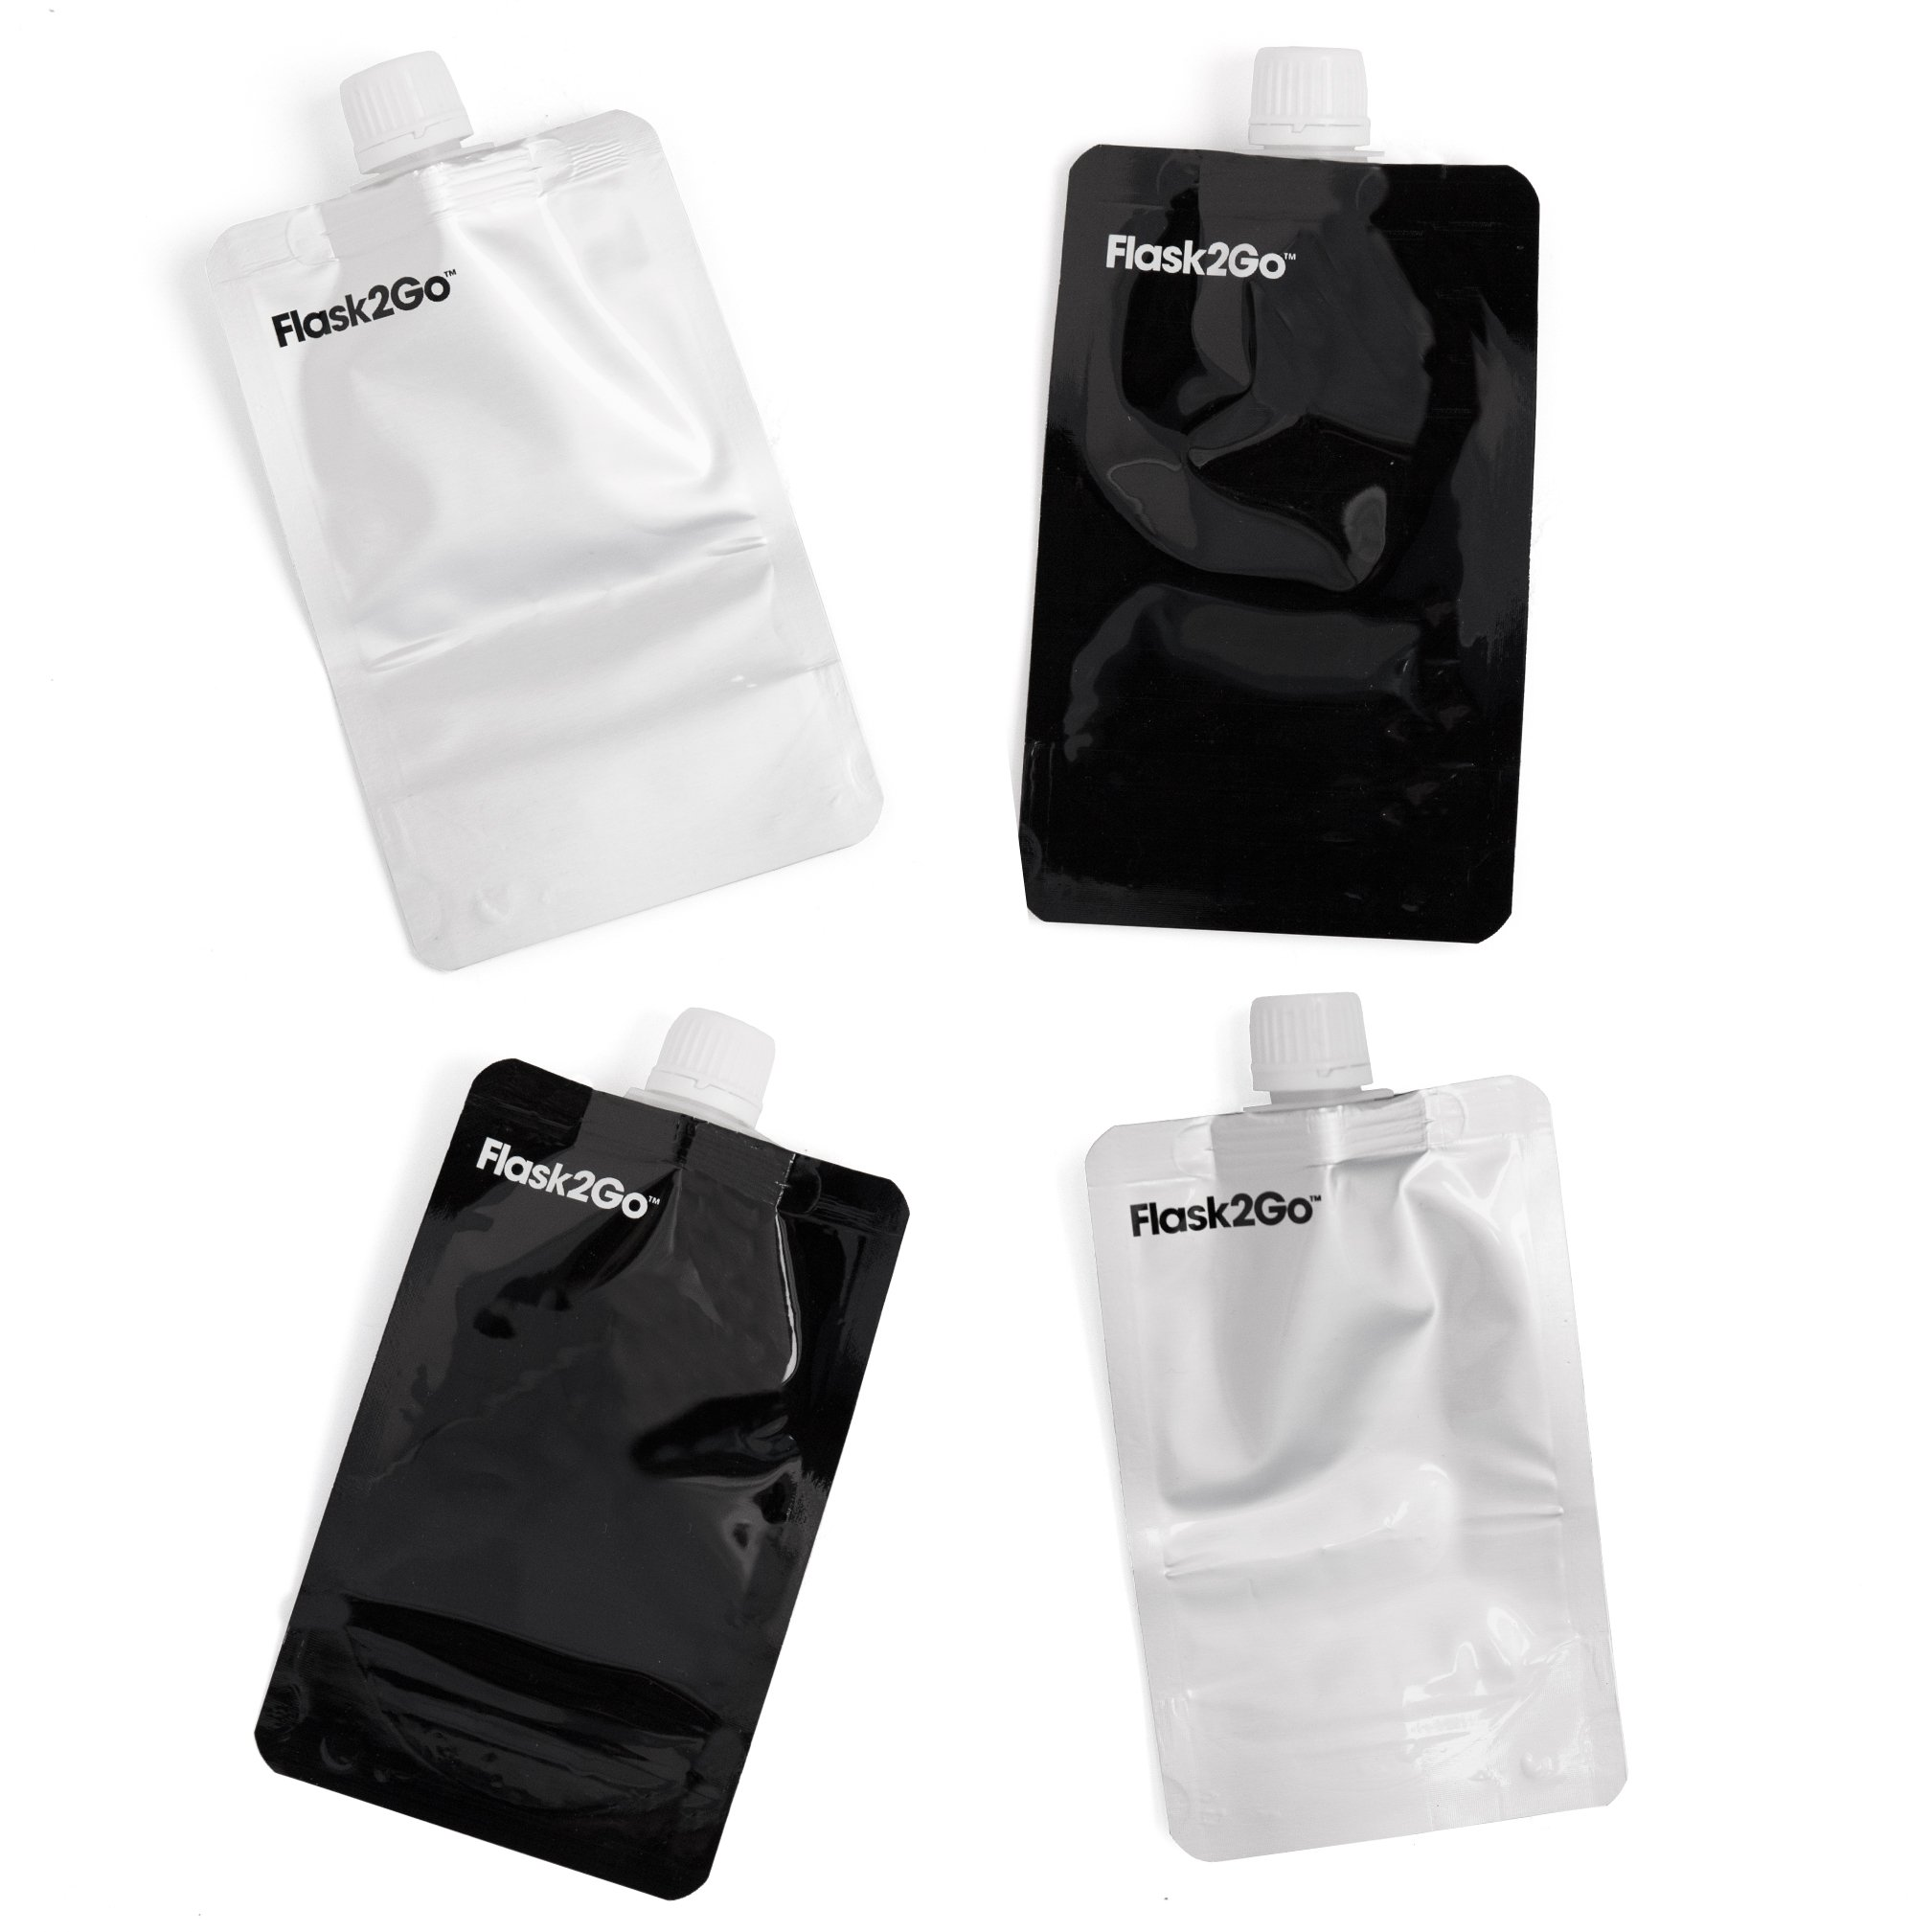 Flask2Go - The Foldable Flask 8oz (4pack) - No Metal Parts! (Black/Silver)